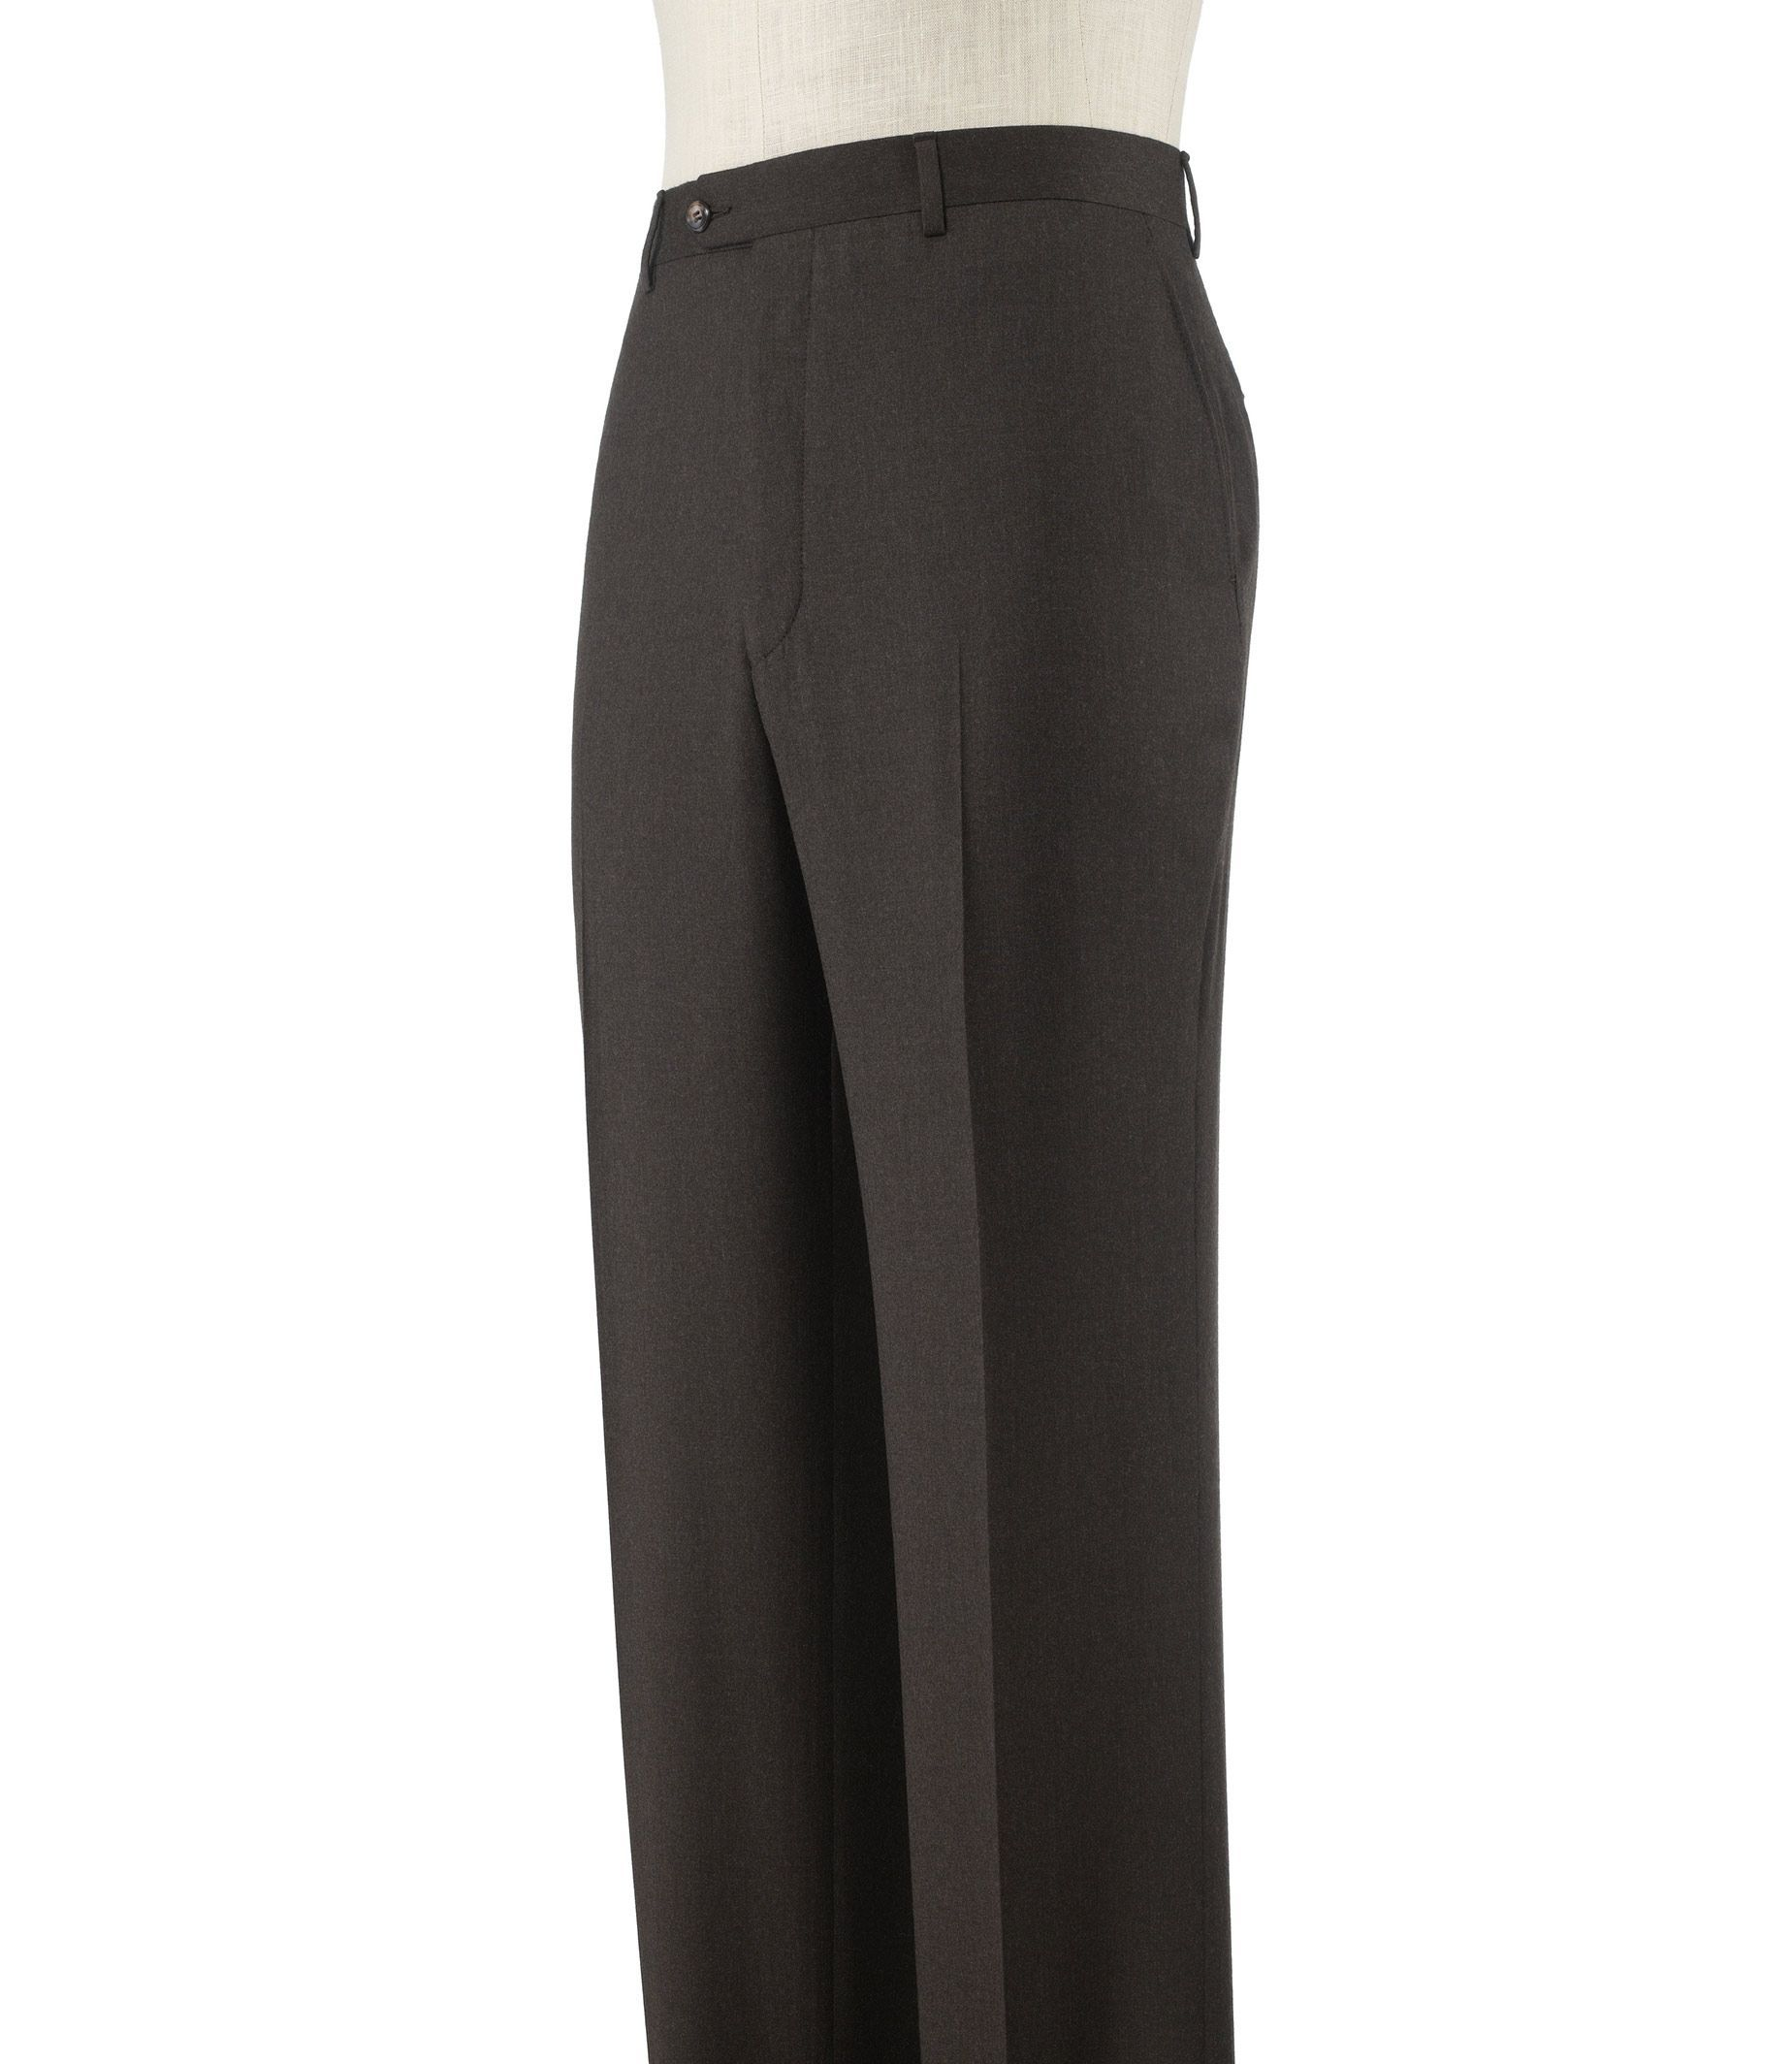 Executive Tailored Fit Plain Front Wool/Cashmere Trousers Extended Sizes